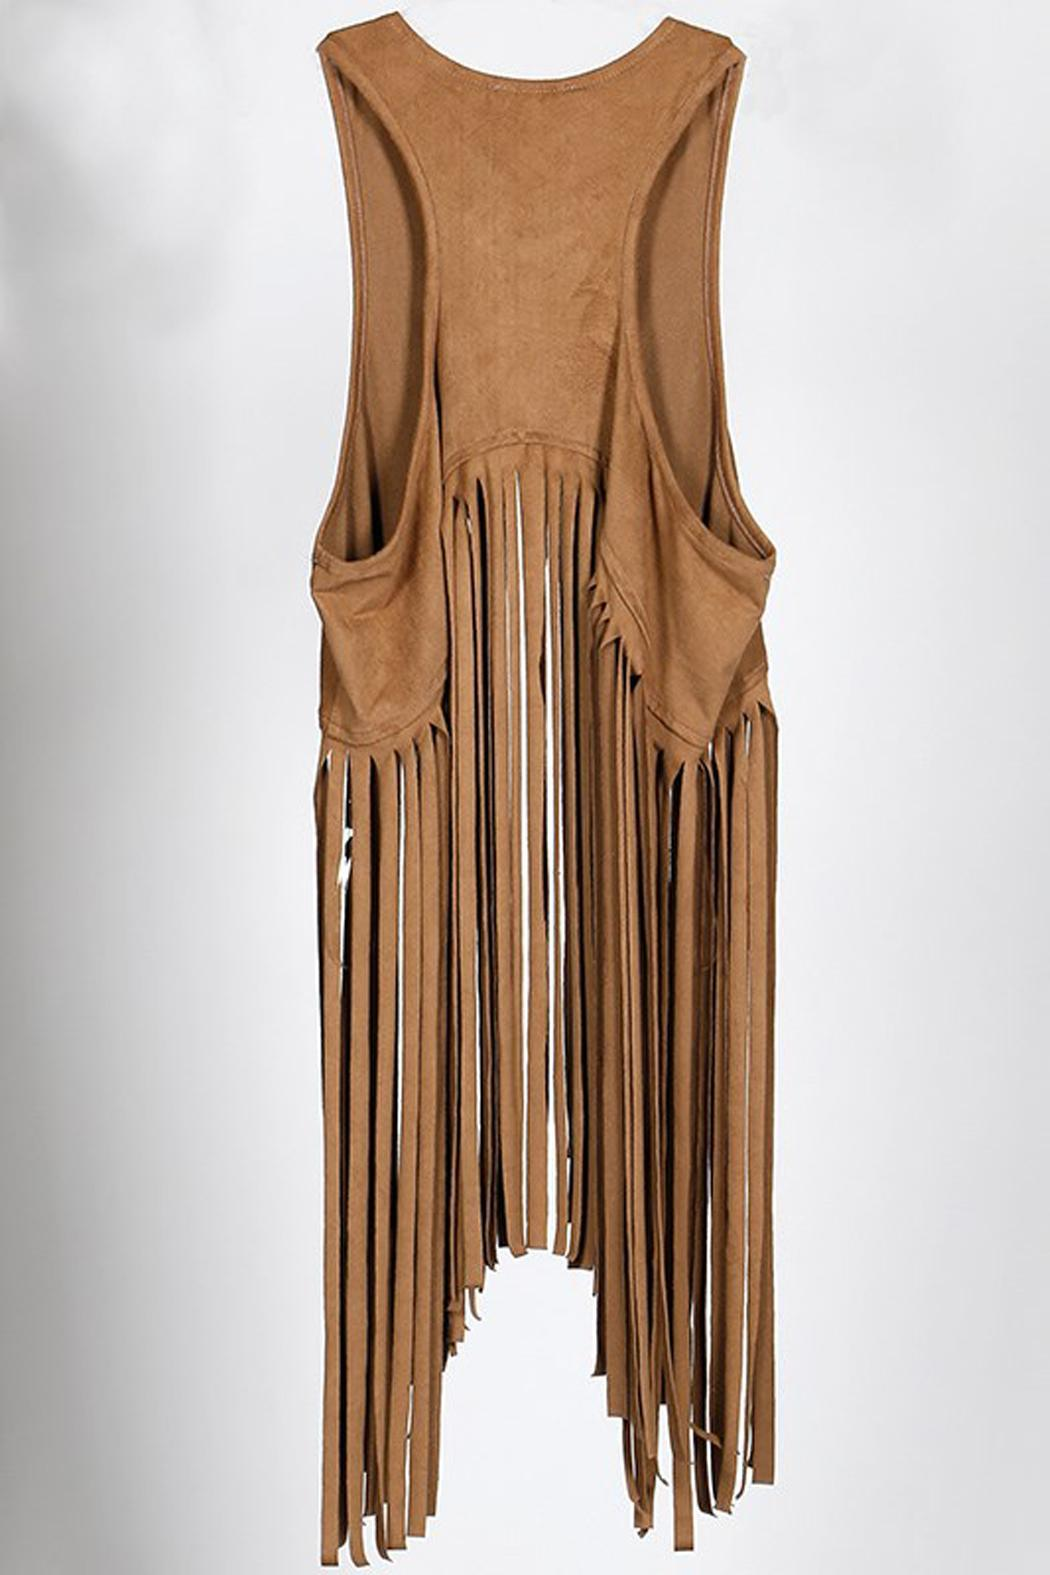 All About Me Suede Fringe Vest From New Orleans By All